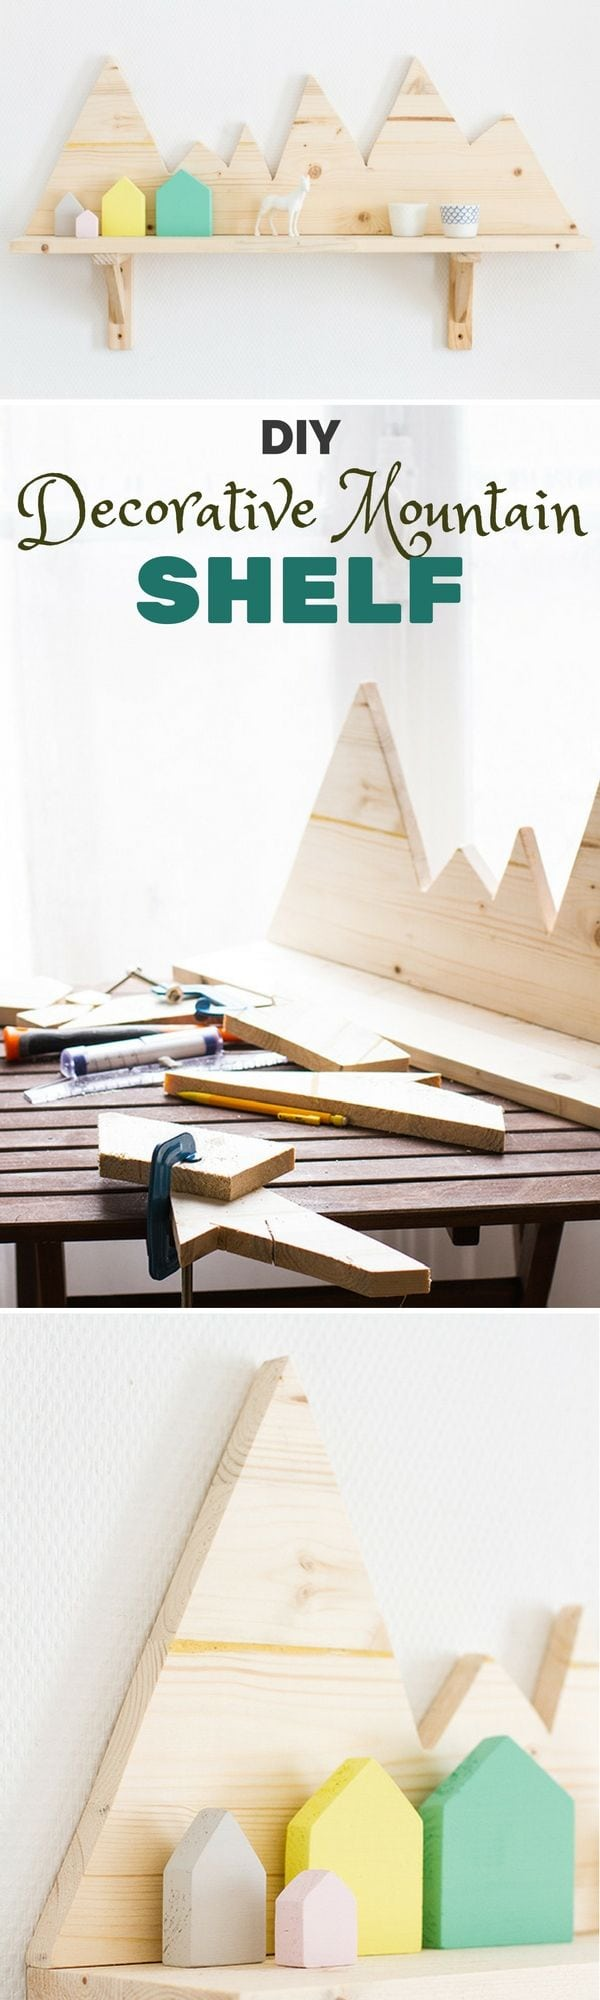 Check out the tutorial: #DIY Decorative Mountain Shelf Industry Standard Design Source by istandarddesign   …